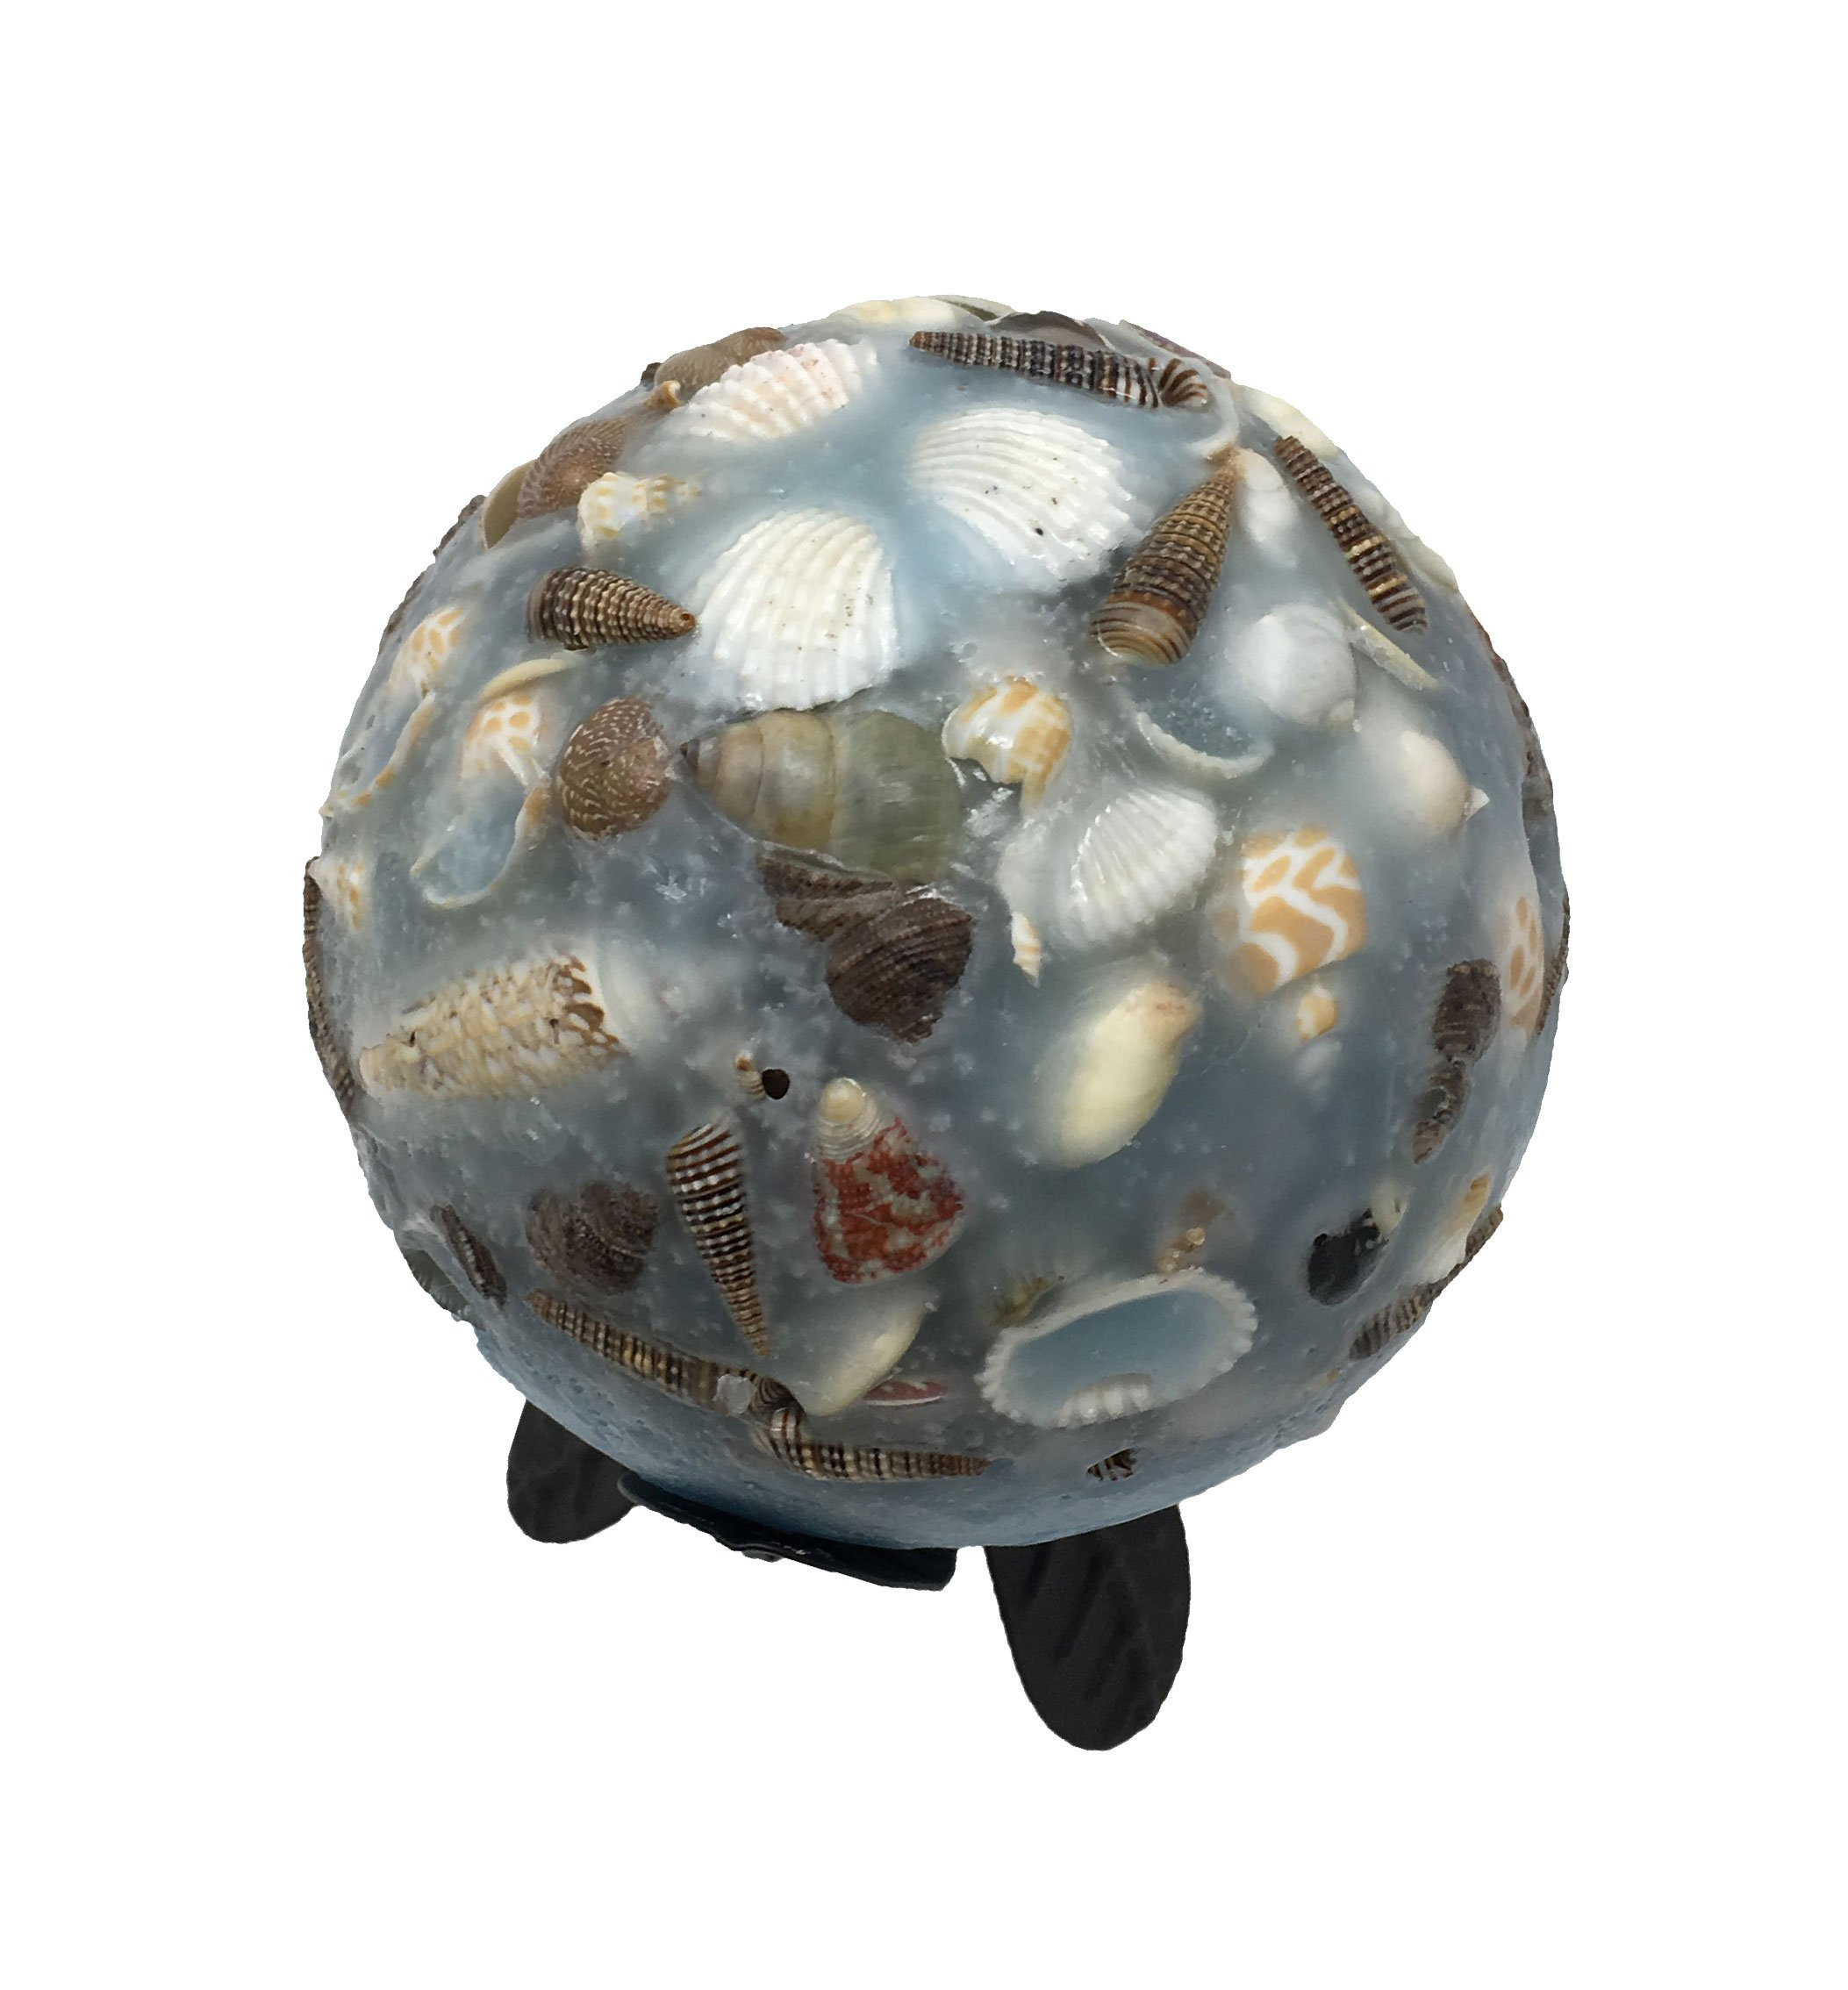 Habersham Candle Wax Pottery Spheres, 4-Inch Diameter with Black Trillium Stand, Seascape